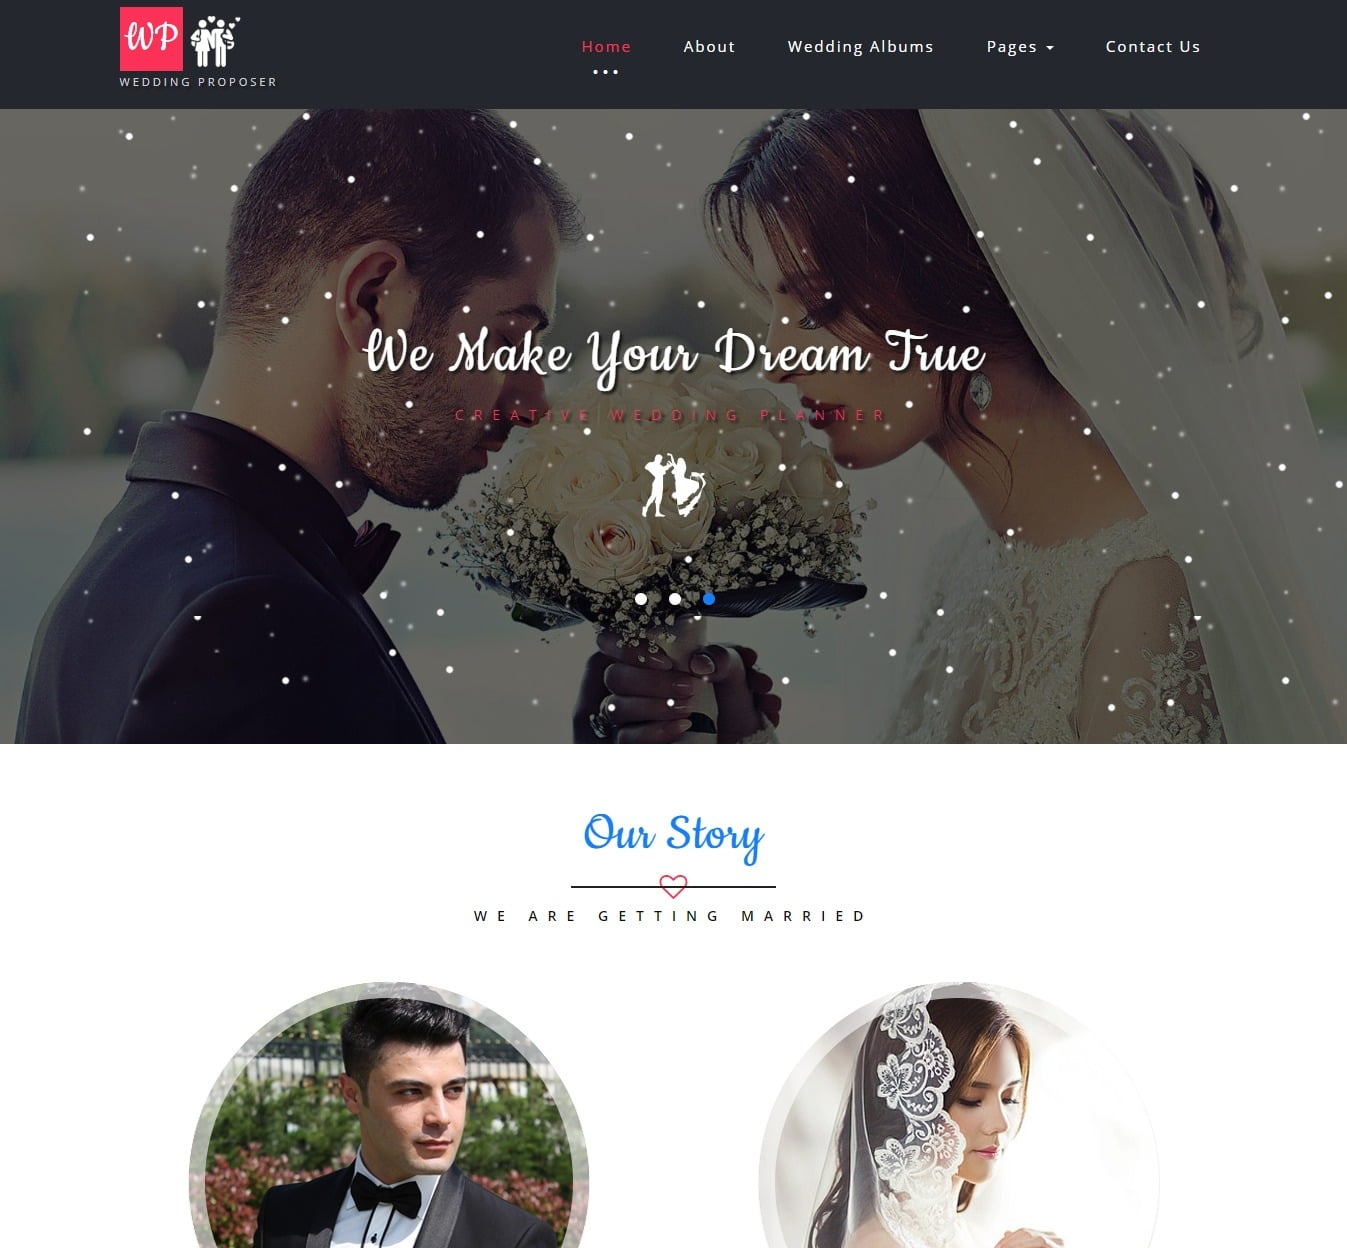 wedding-proposer-free-wedding-website-template